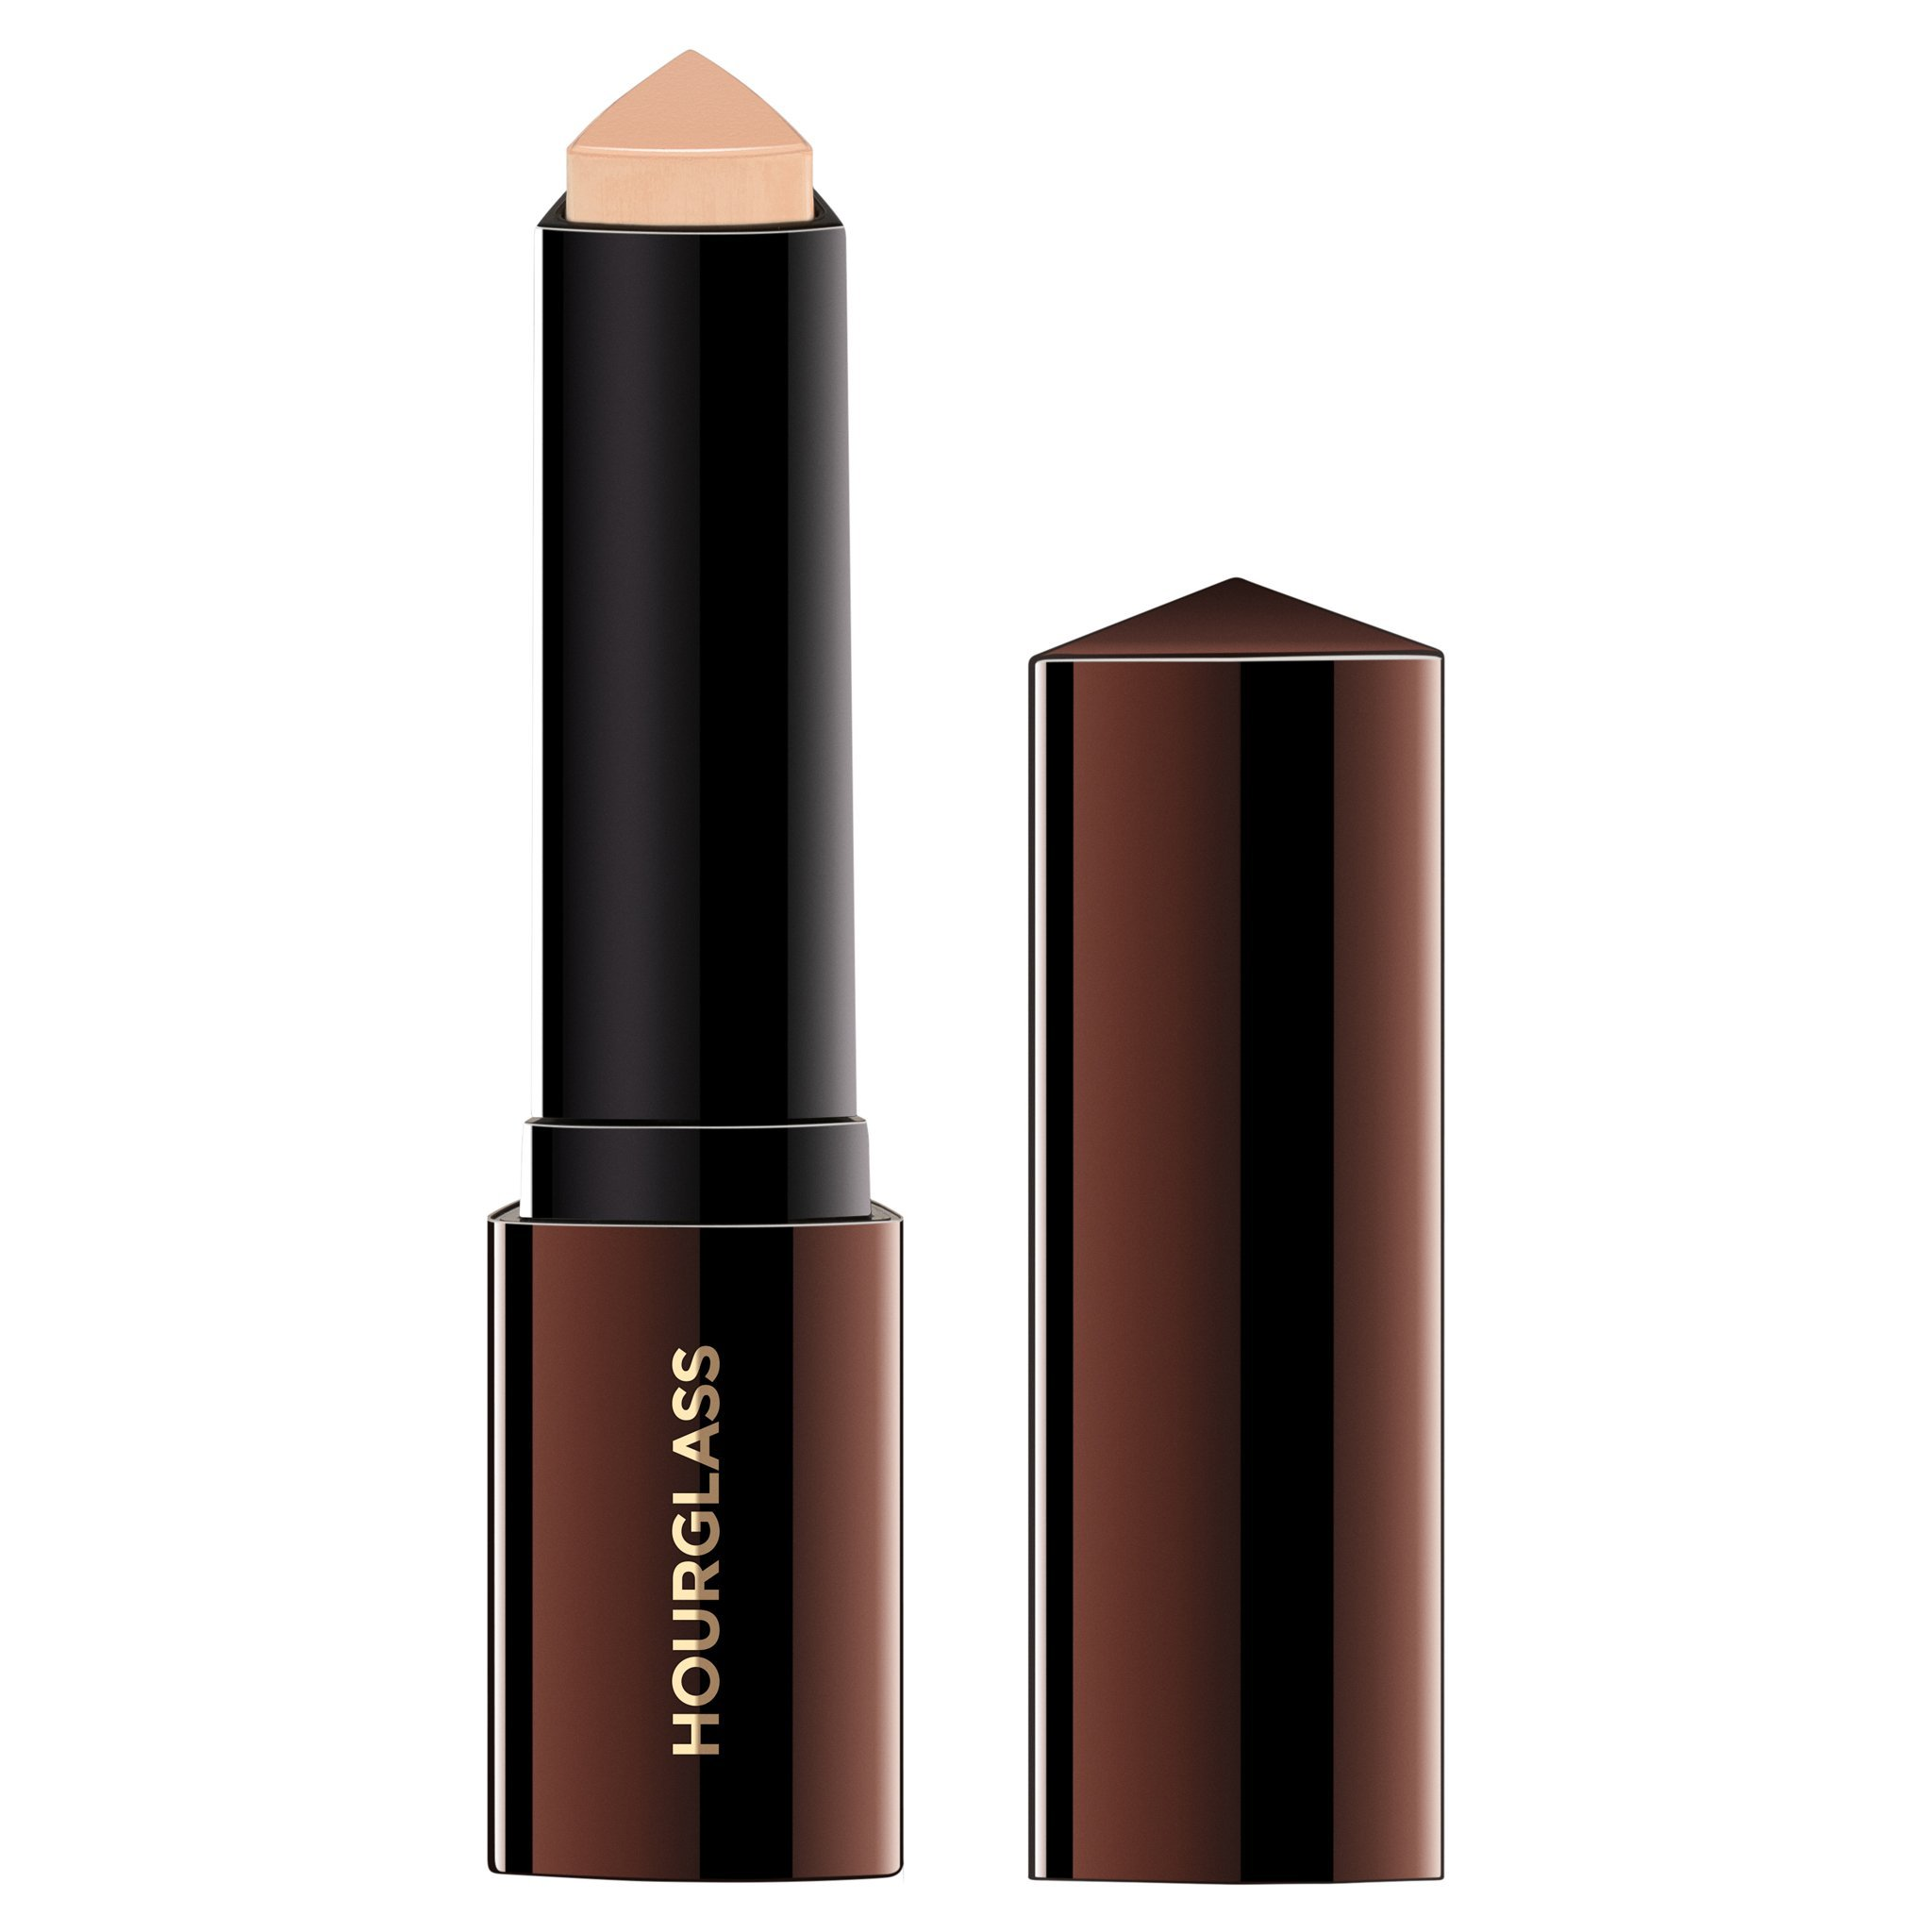 Hourglass Vanish Seamless Finish Foundation Stick (ALABASTER)